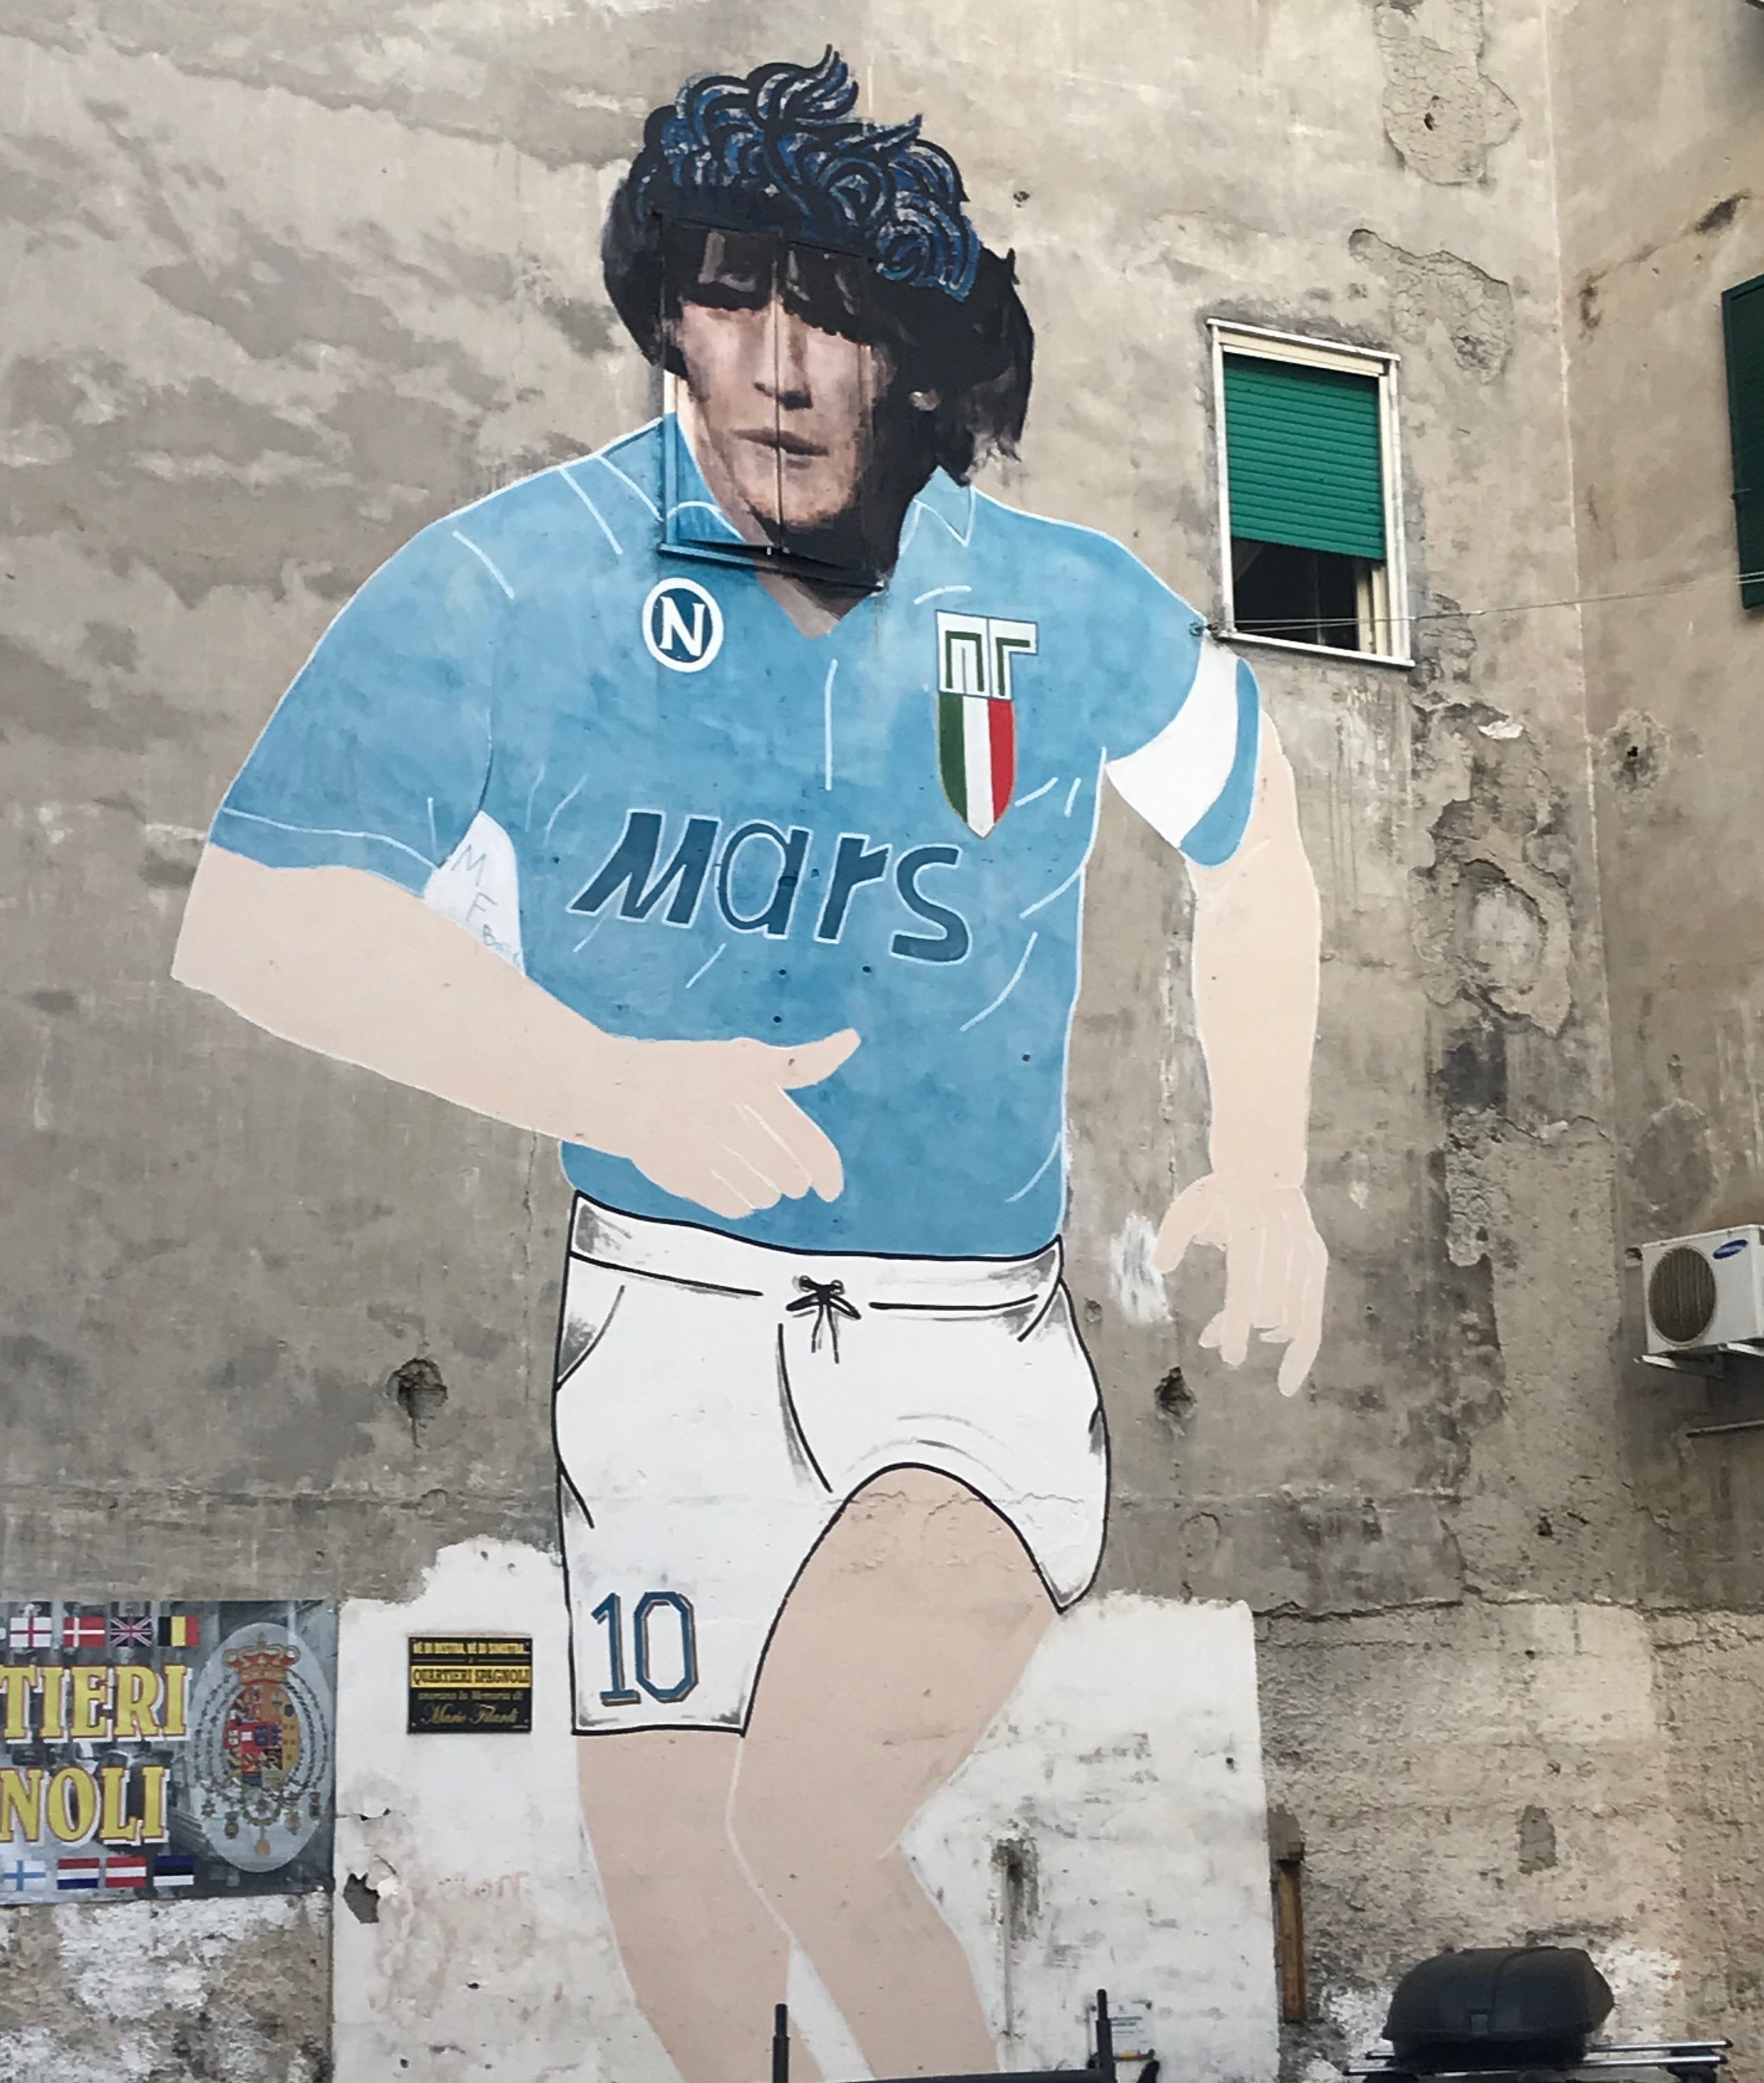 Street art in Naples 1